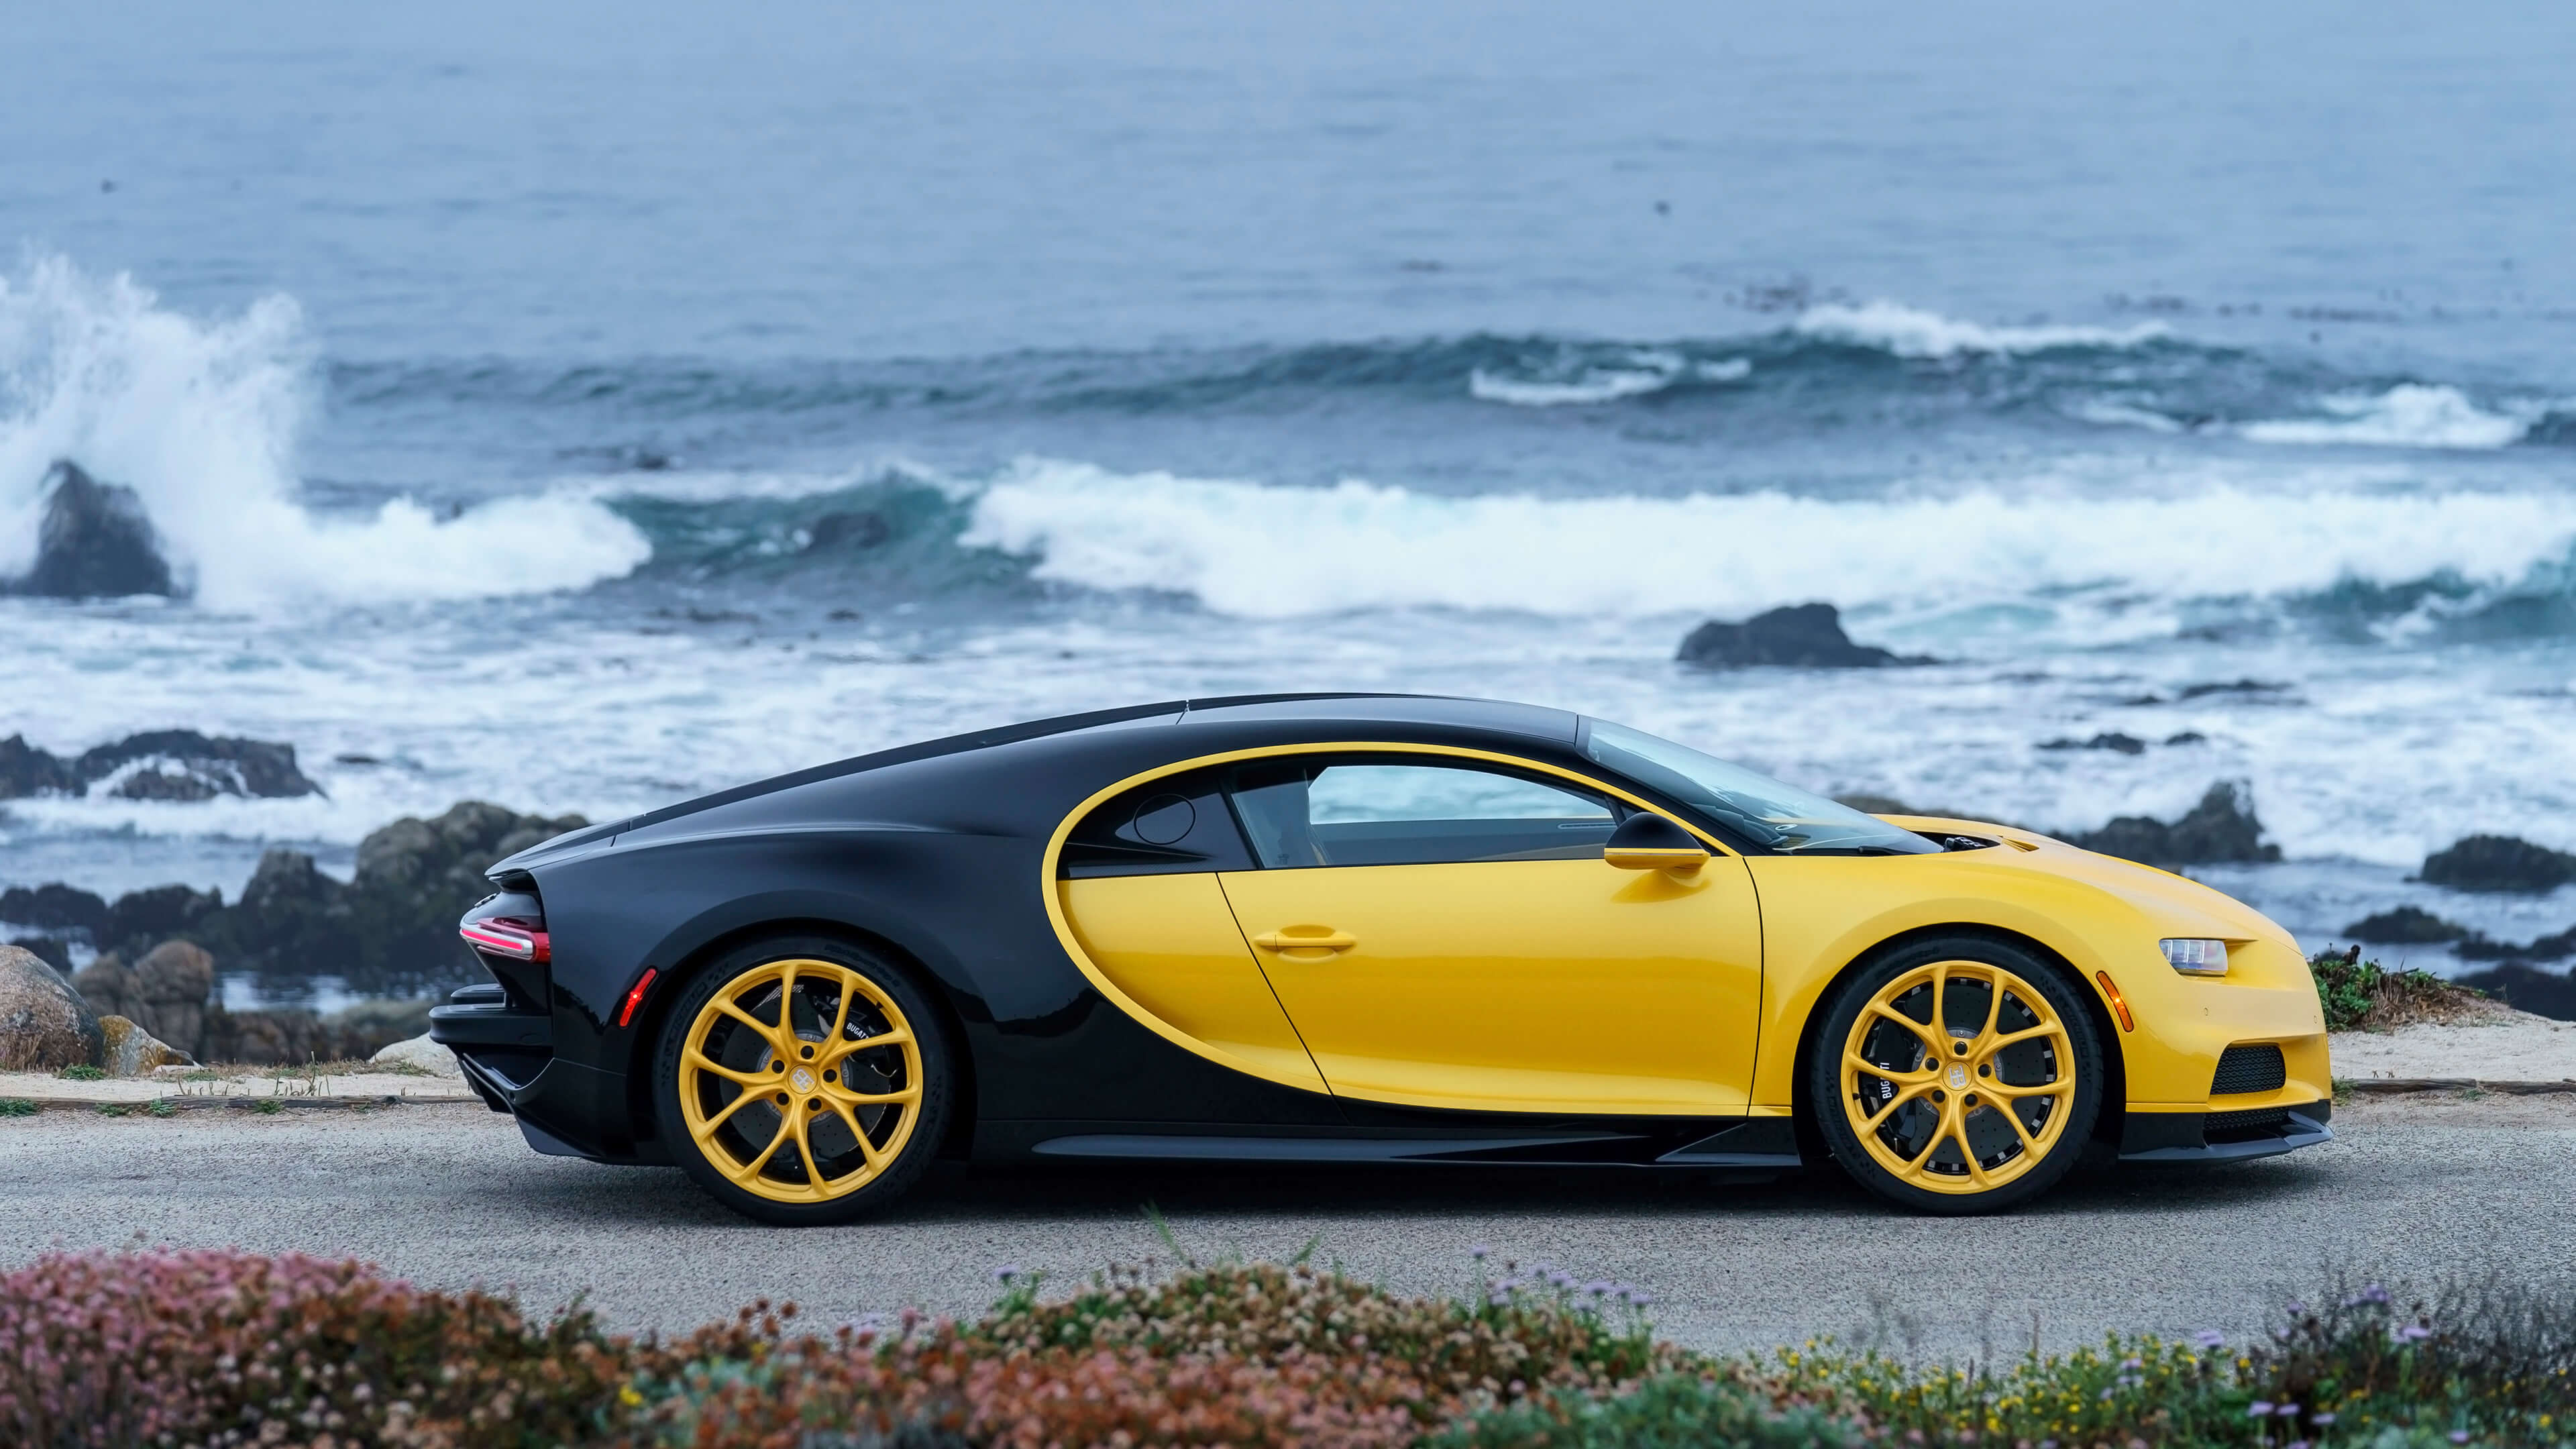 yellow and black bugatti wallpaper 67214